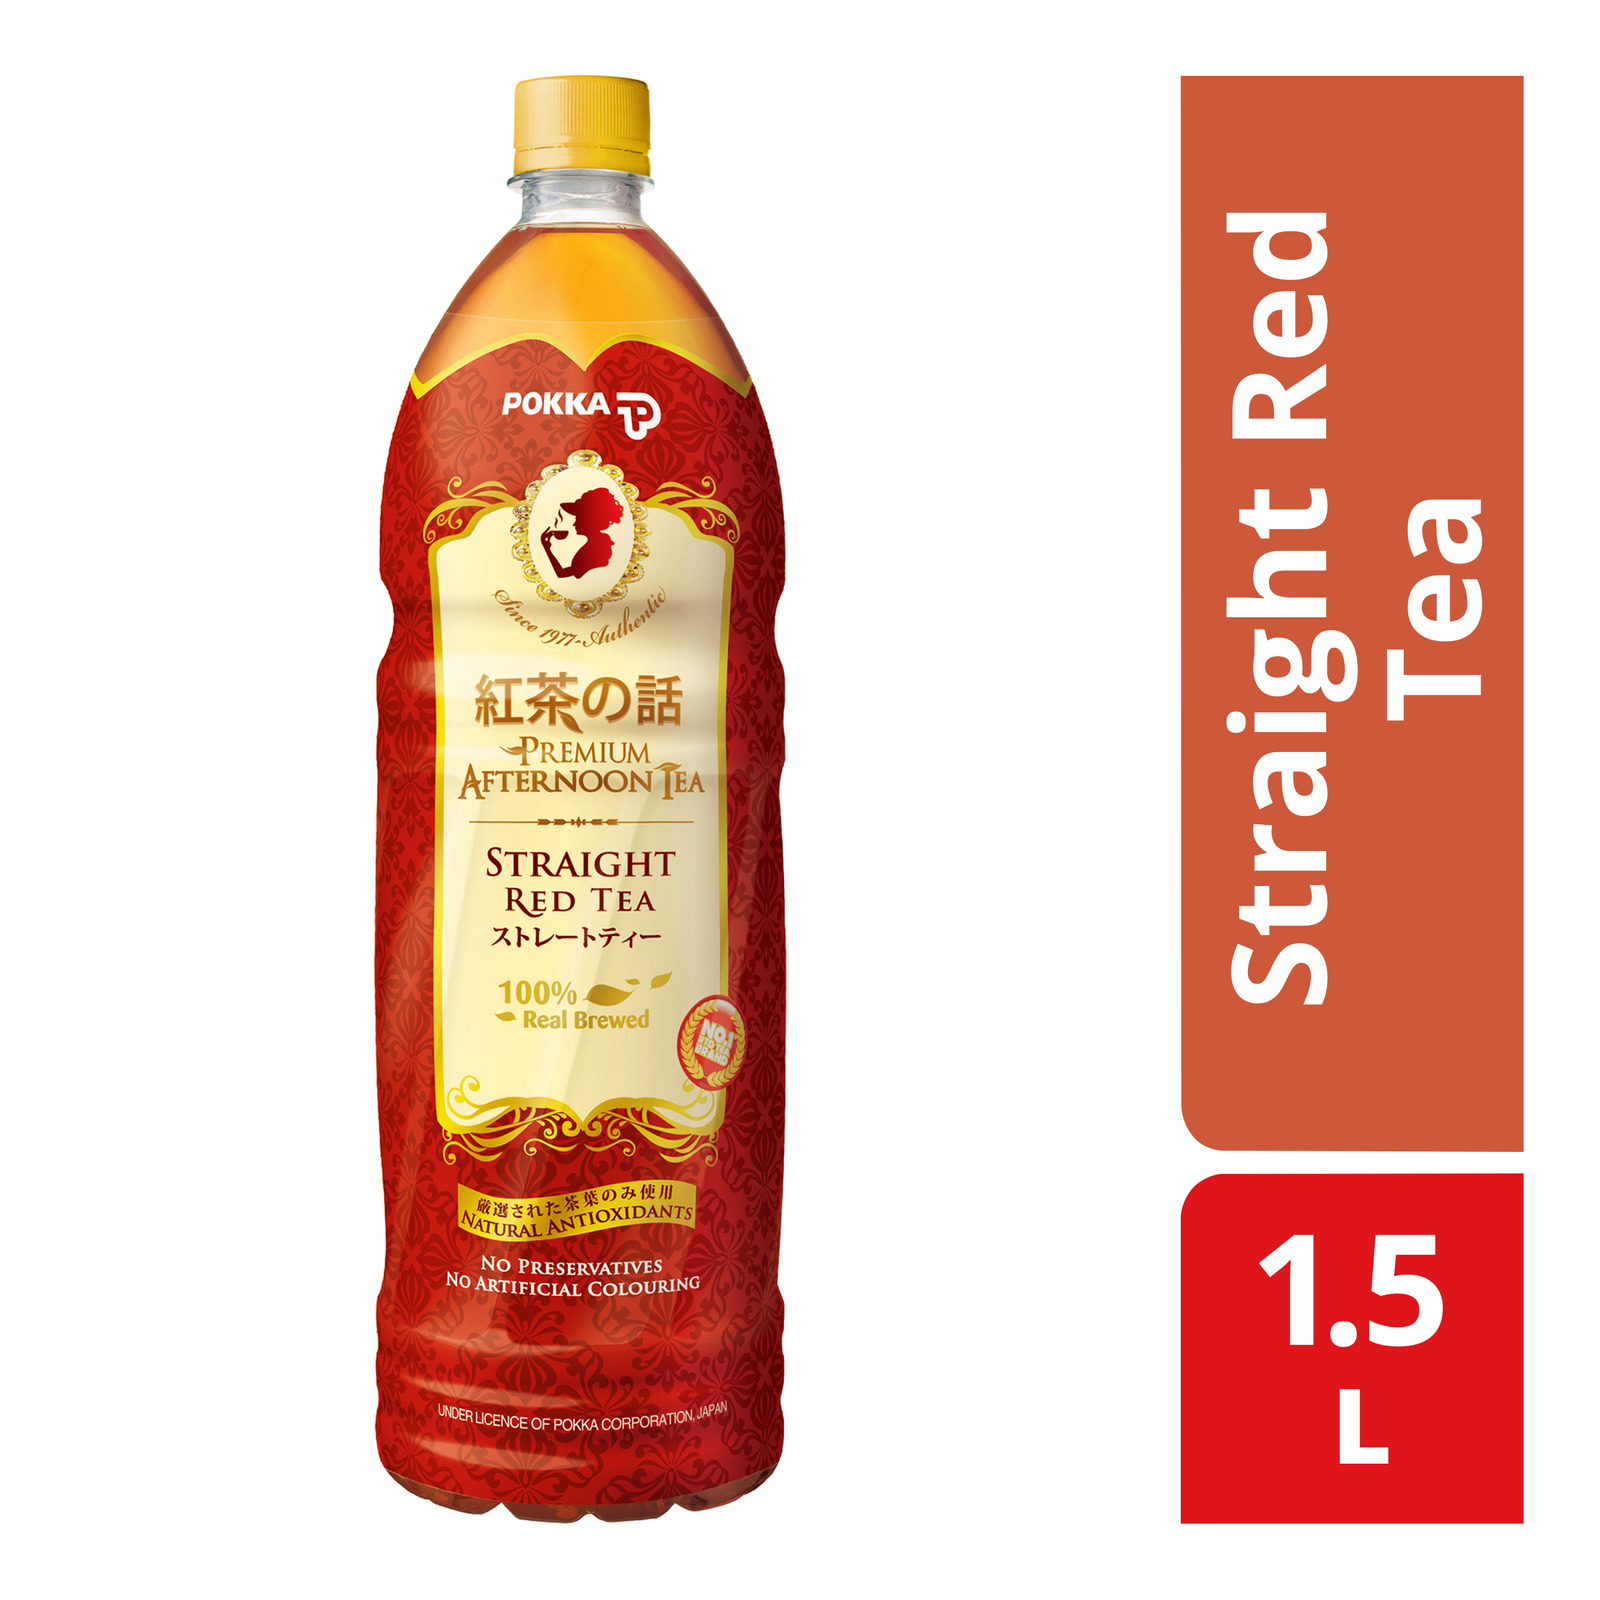 Pokka Premium Bottle Drink - Straight Red Tea